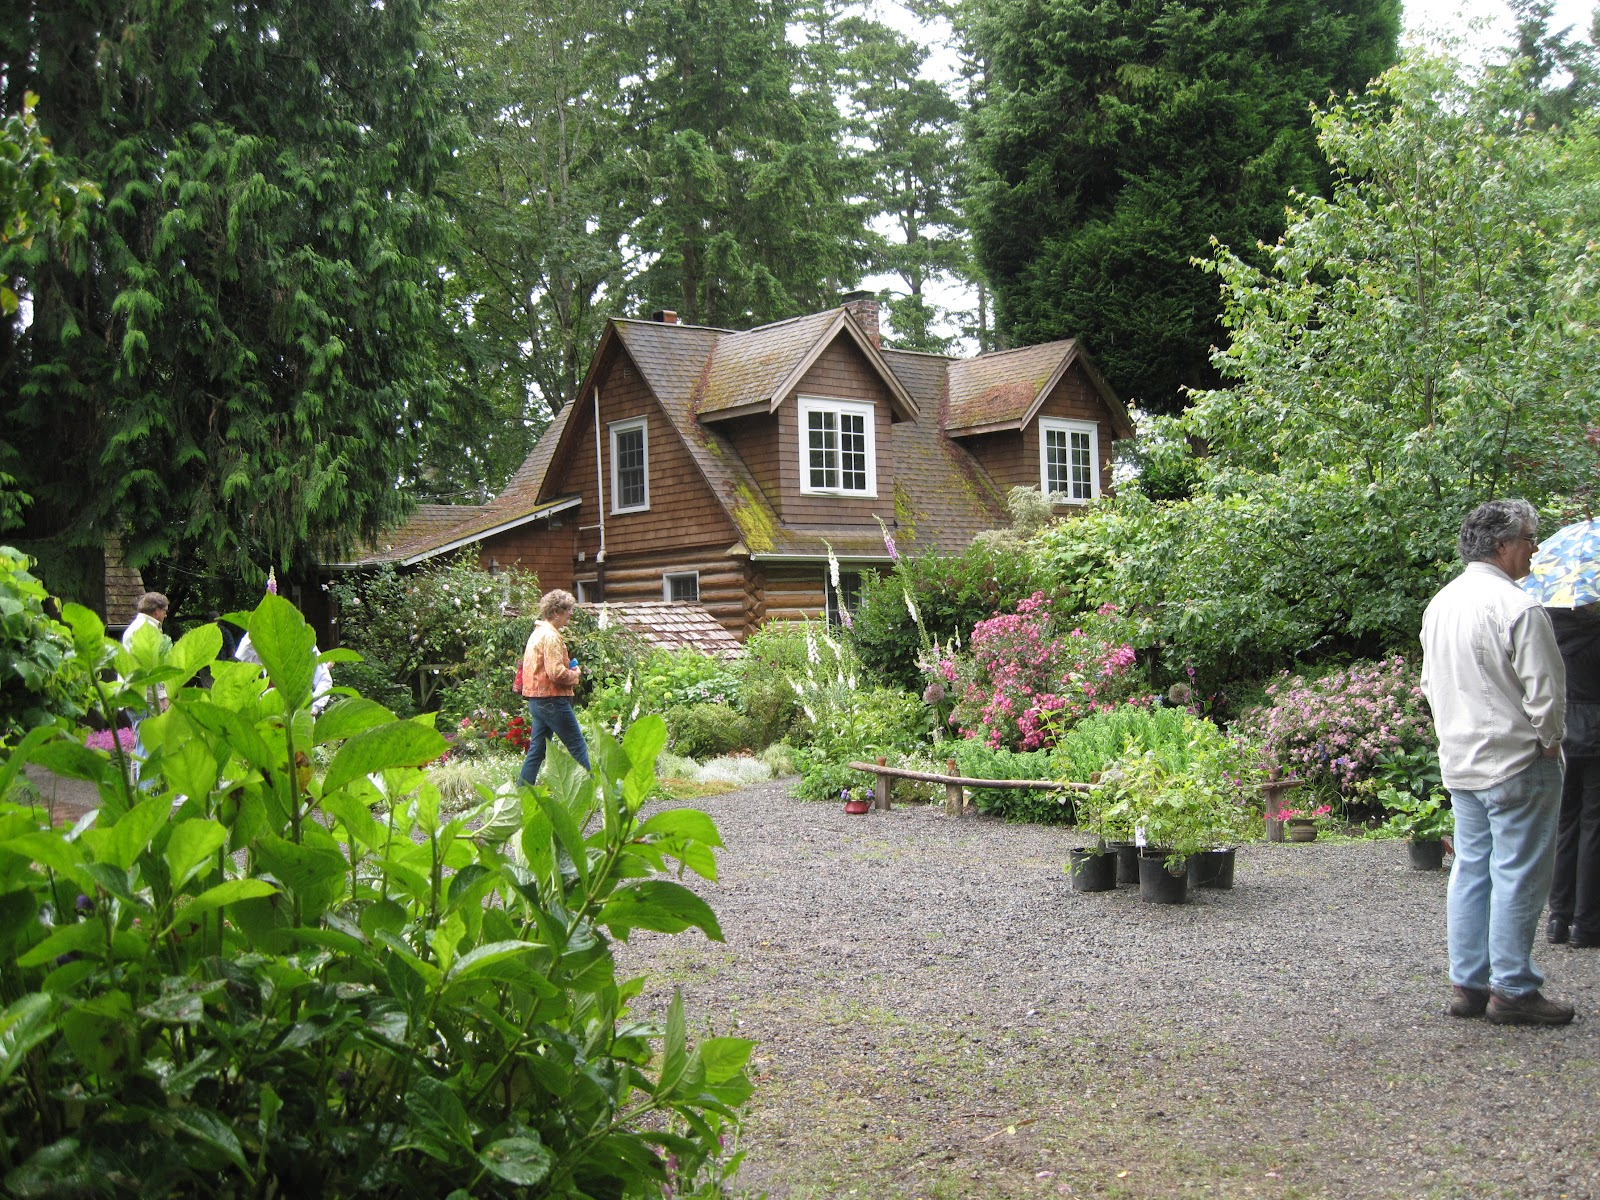 Little garden house - Finally At The End Of The Lane Are The Restored Log Cabin House And A Fantastic Little Garden Shed